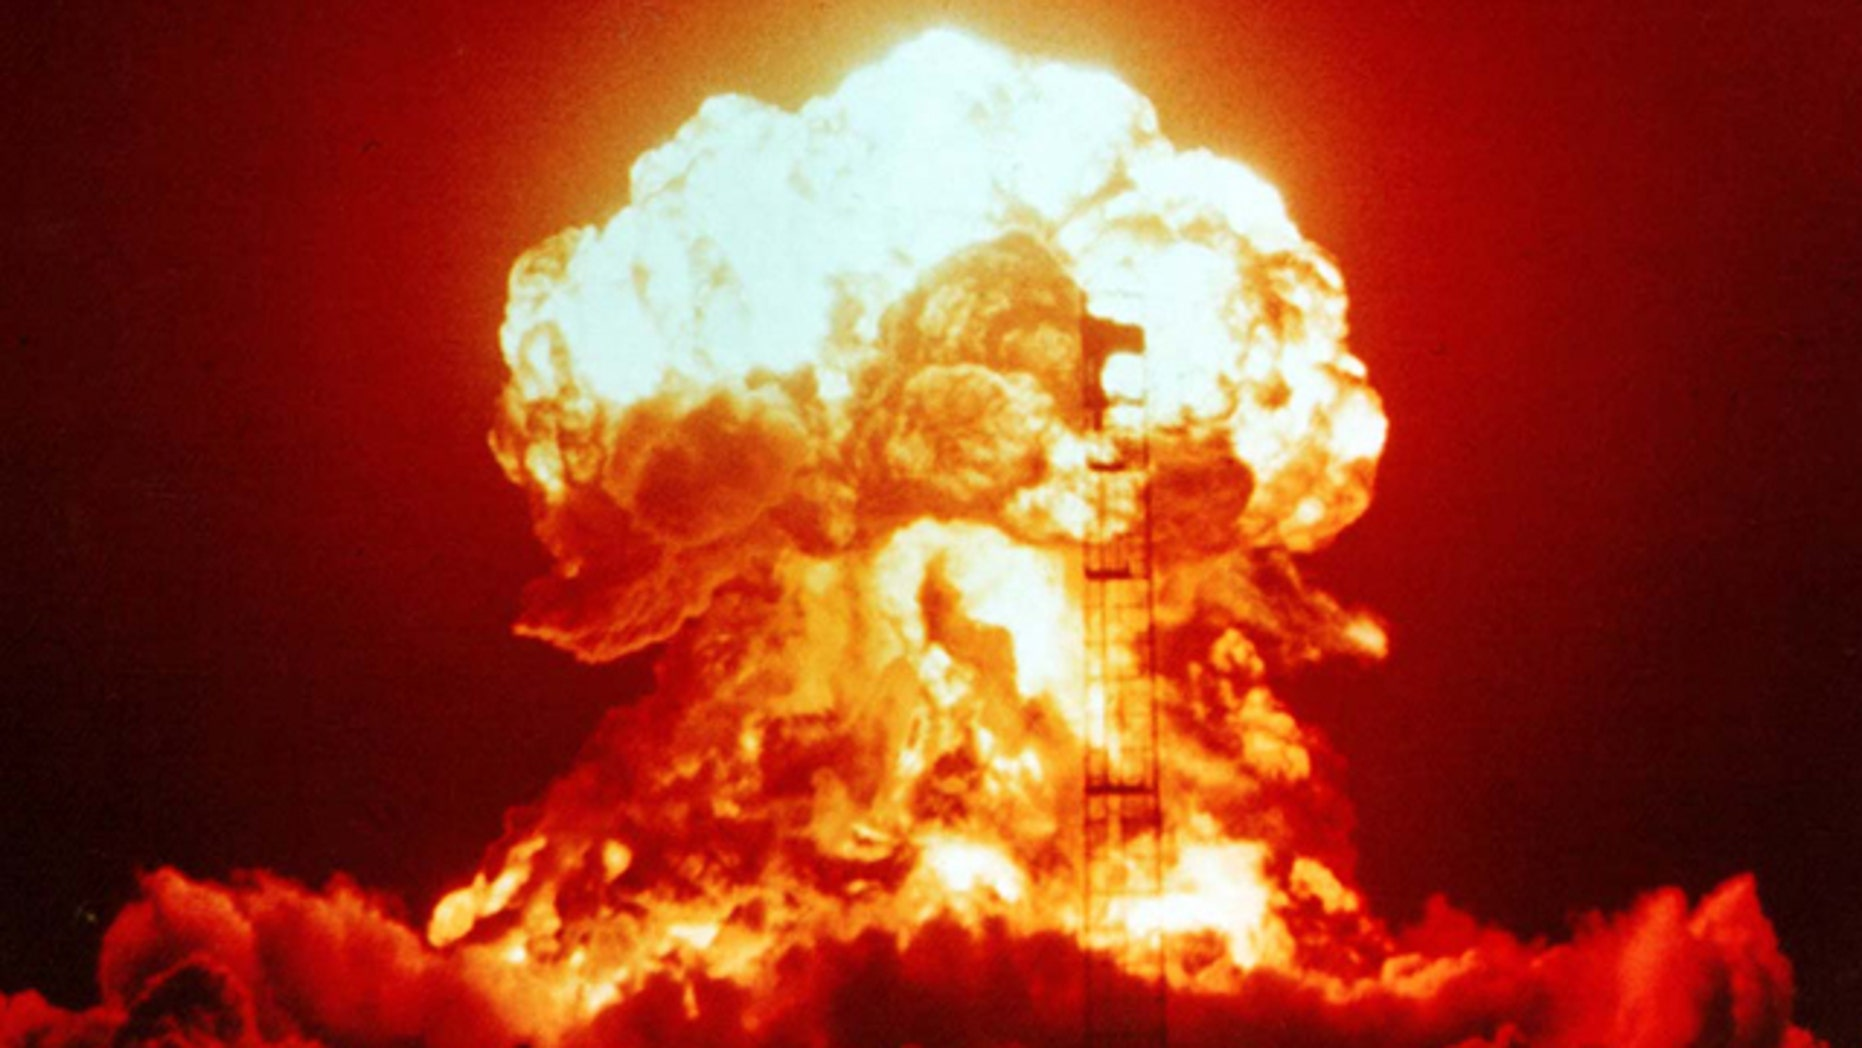 A 23-kiloton nuclear bomb detonated on 18 April, 1953, at a Nevada test site released this mushroom cloud.